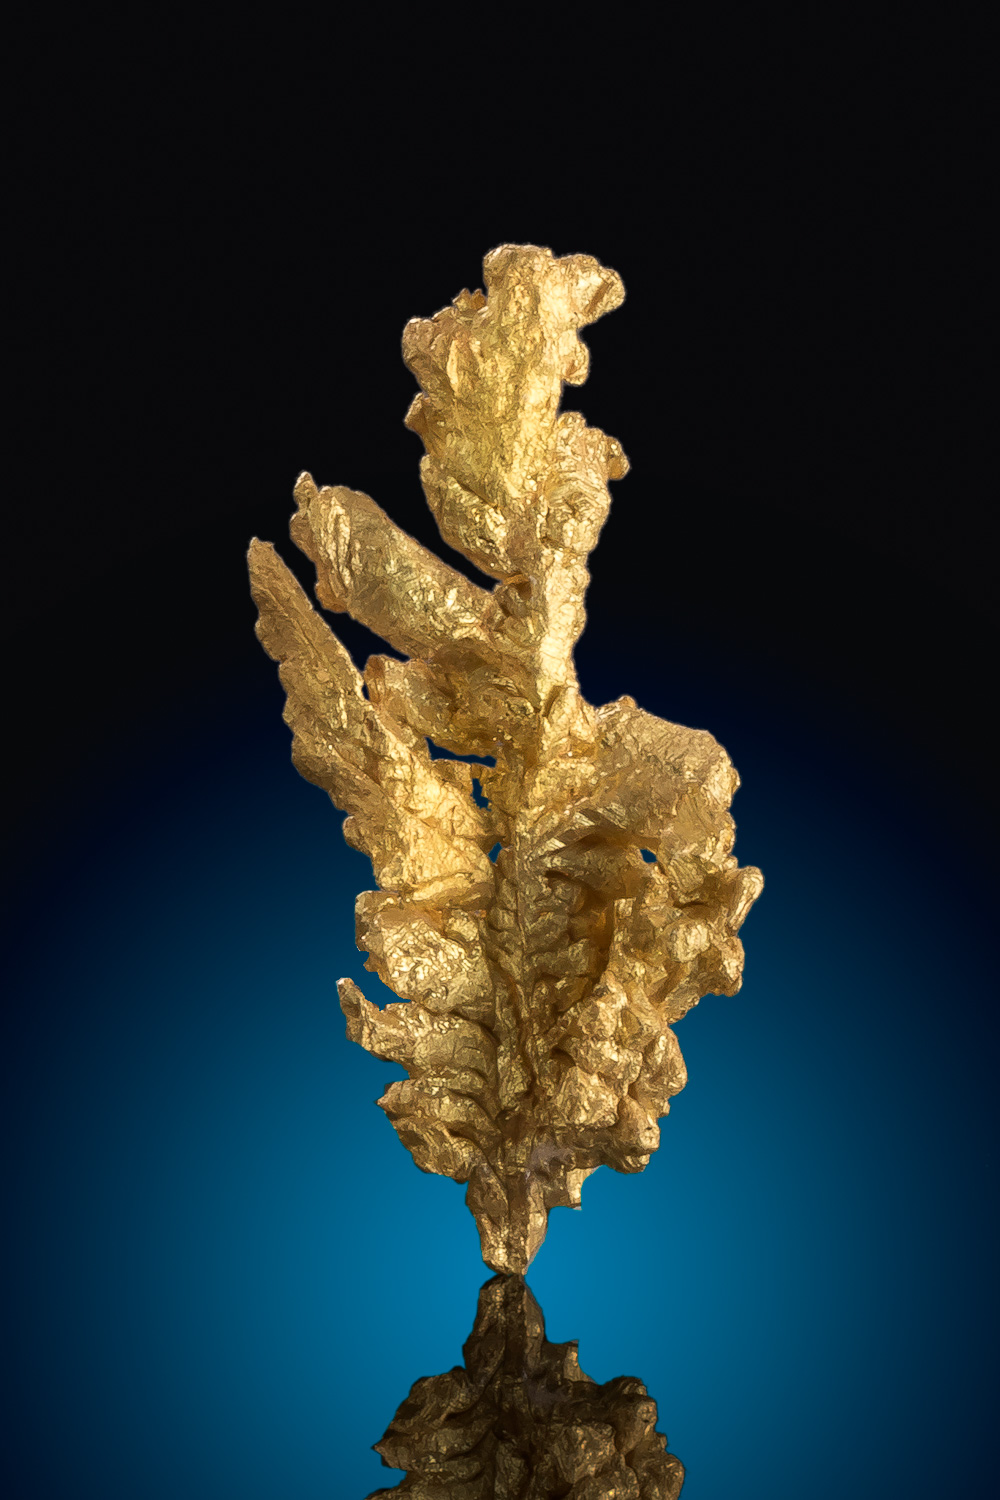 Long and Faceted Gold Crystal - Mariposa County, California